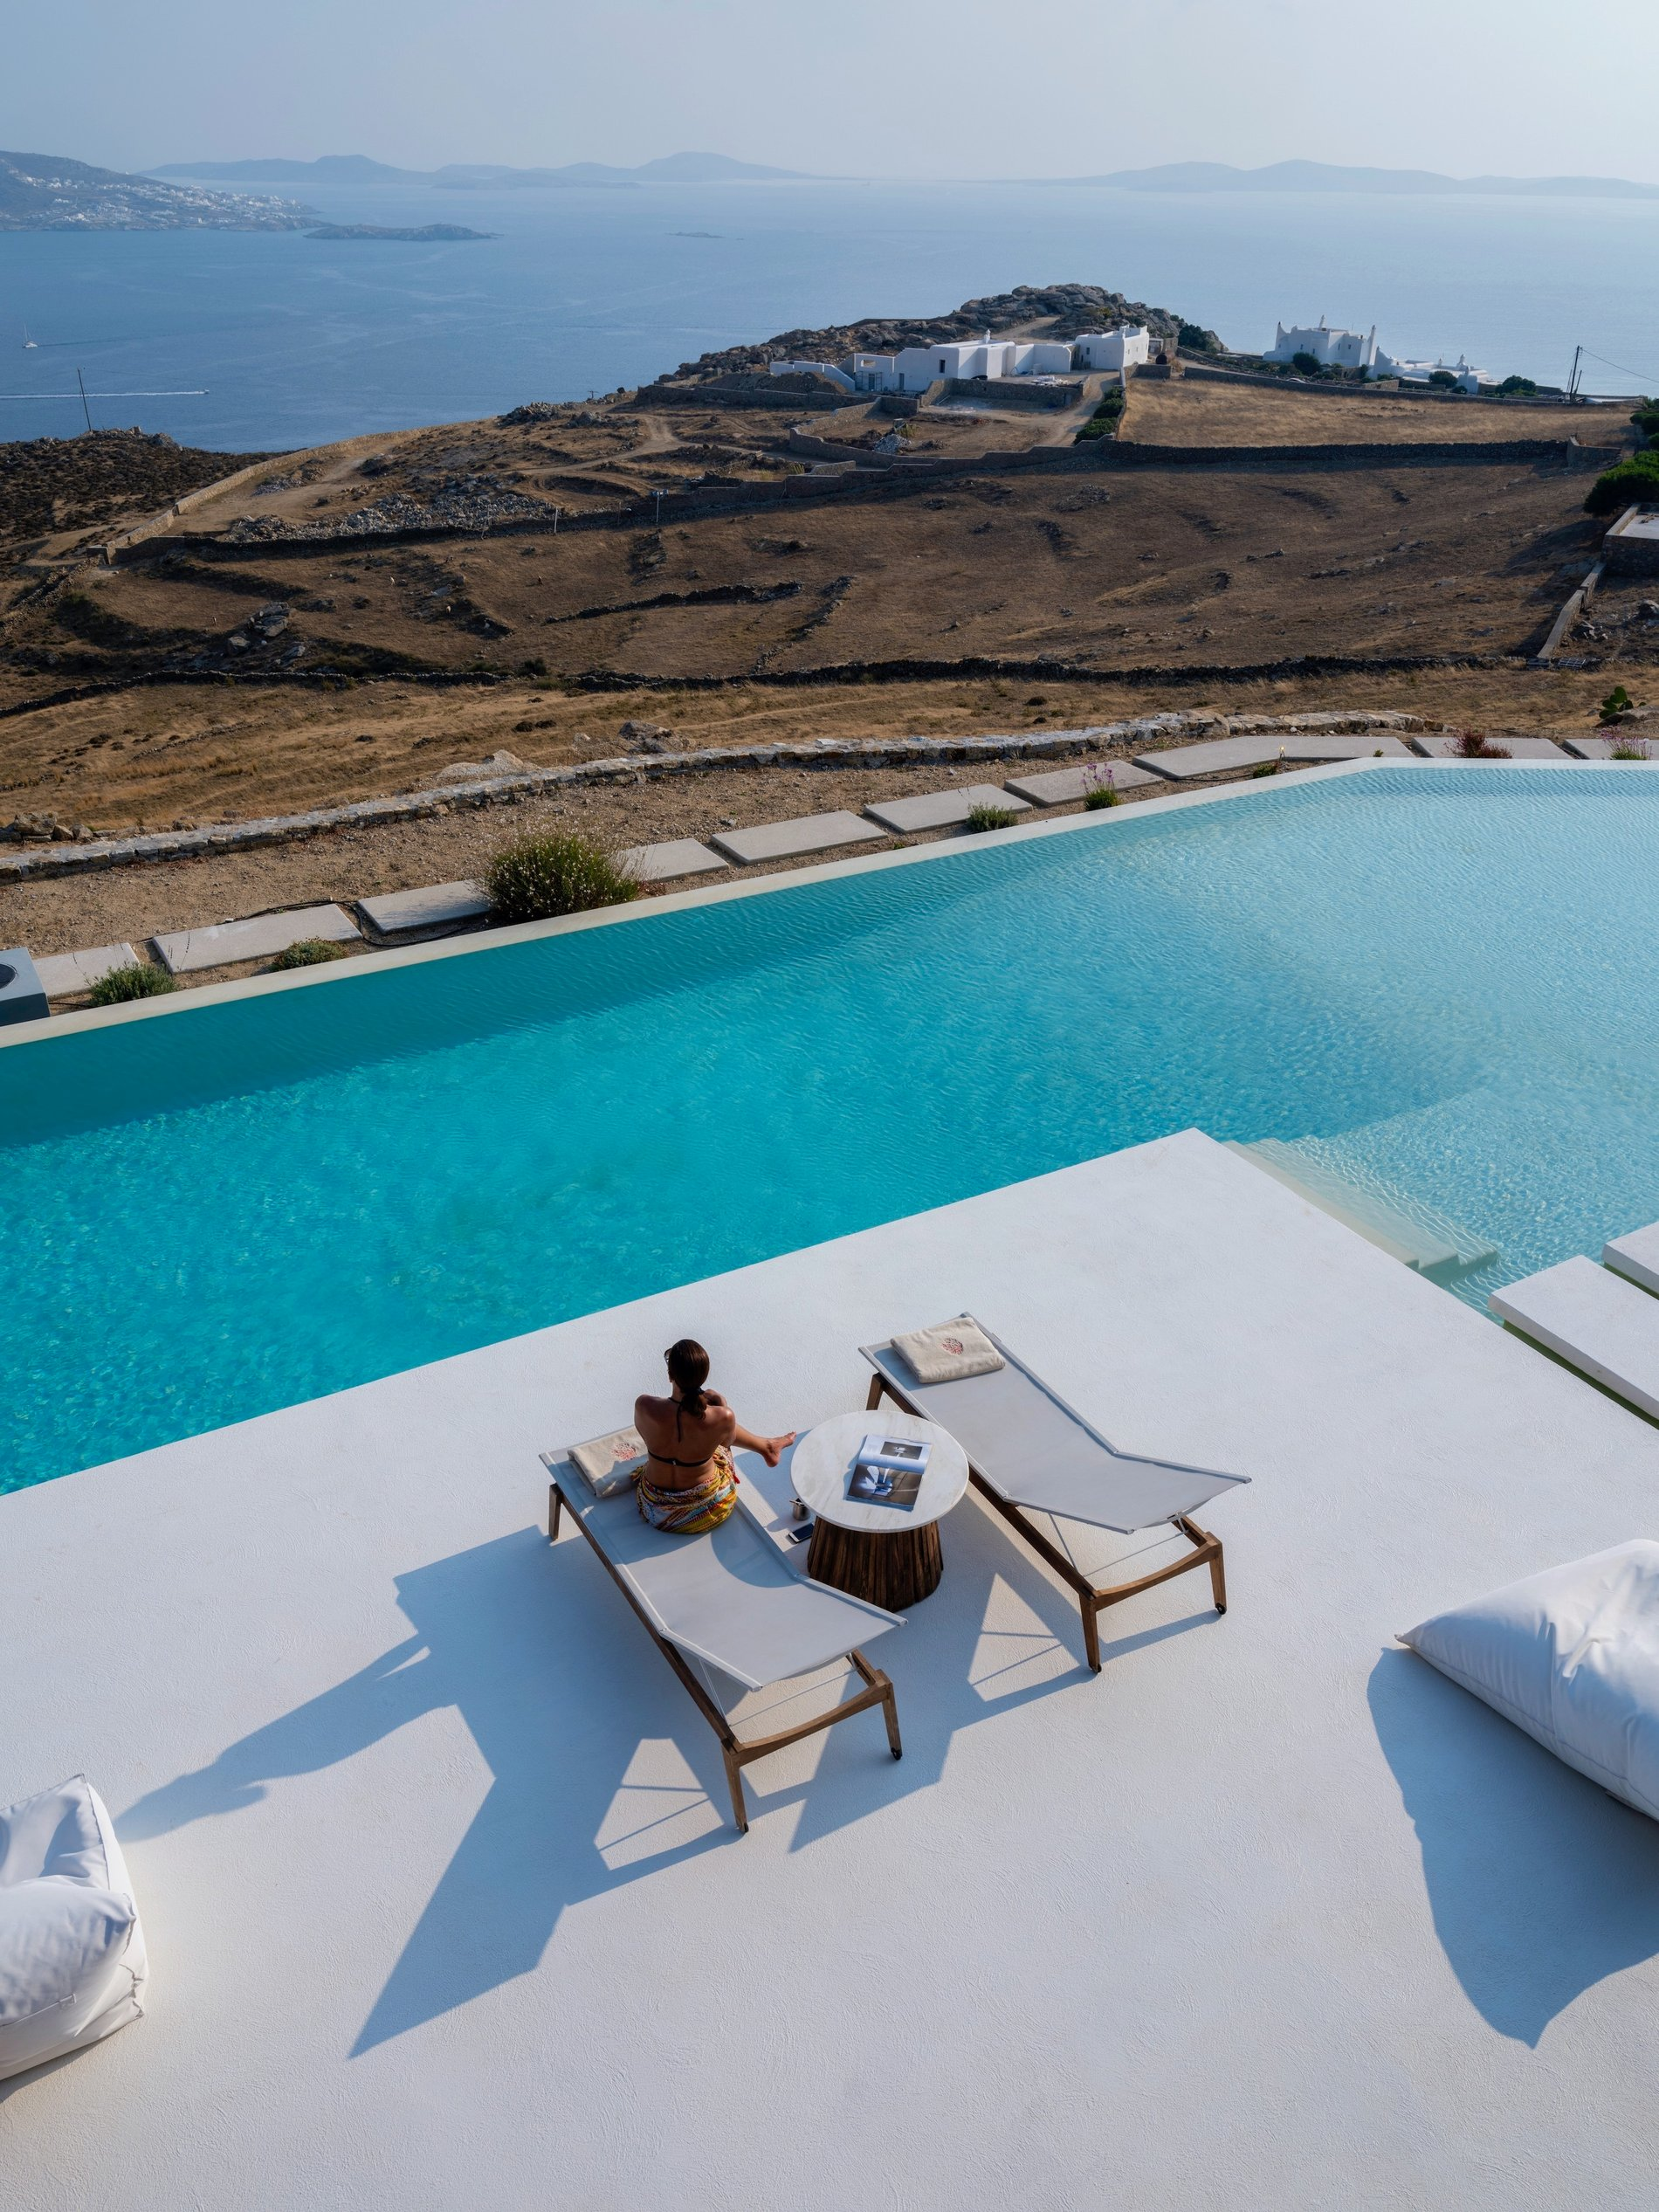 Ariel view of the patio, pool and land separating this stunning Modern home from the Mykonos shoreline.